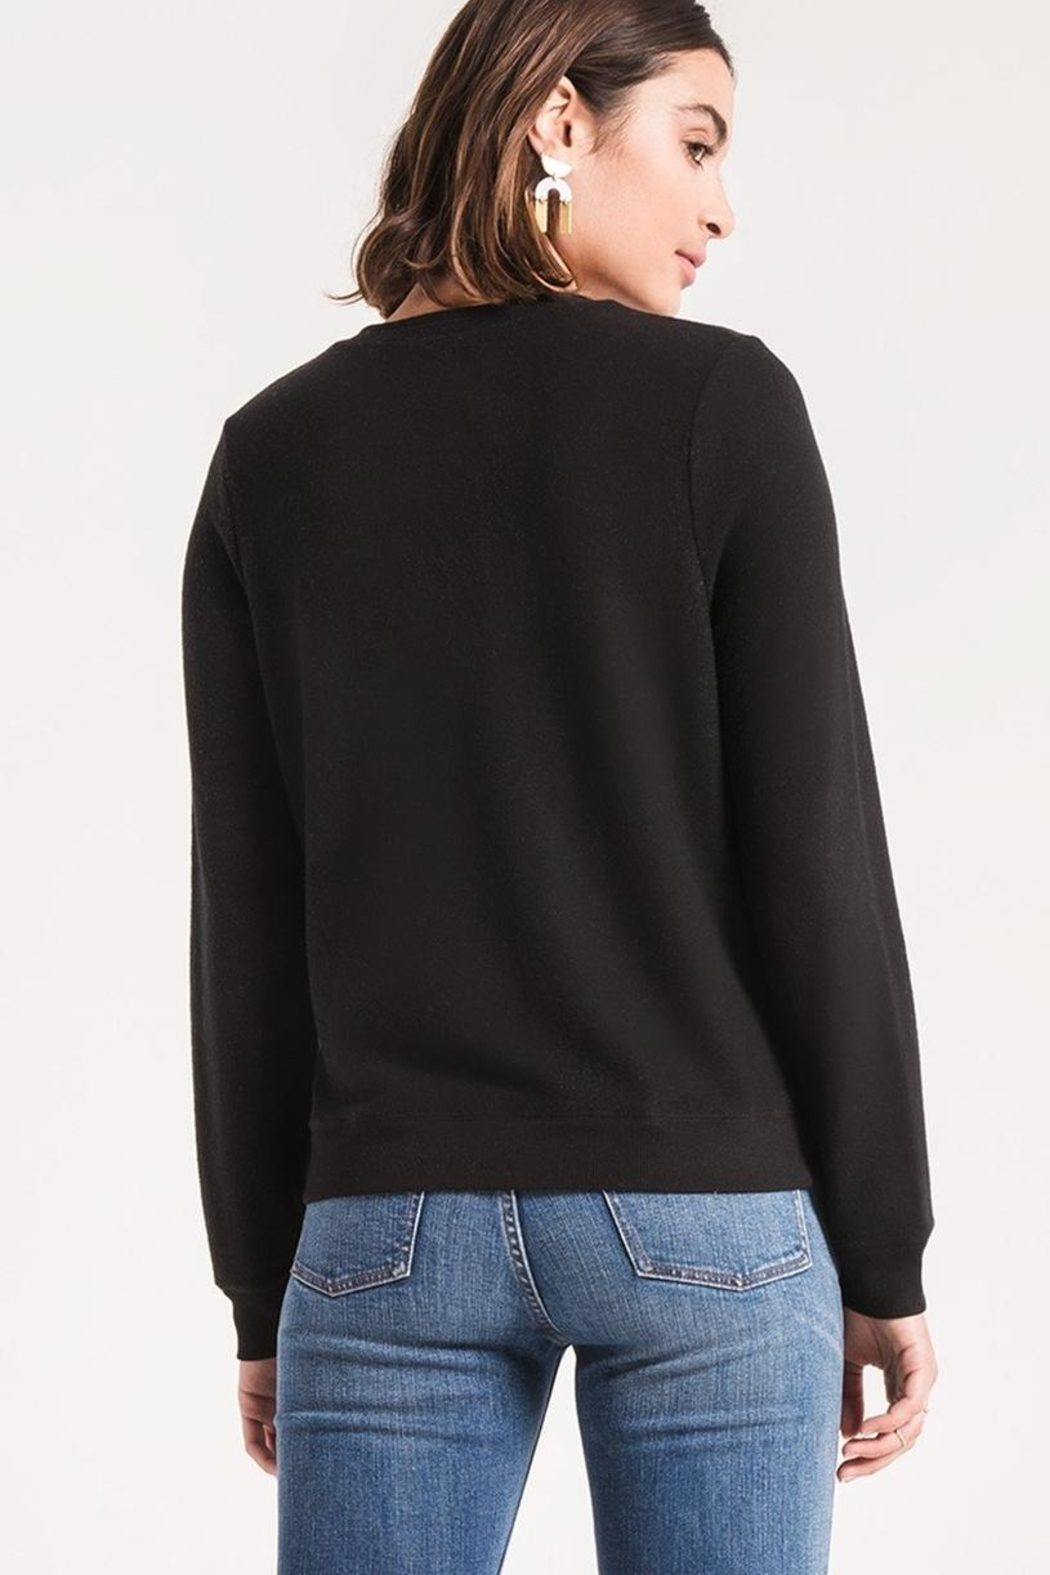 z supply Black Crossfront Sweater - Front Full Image